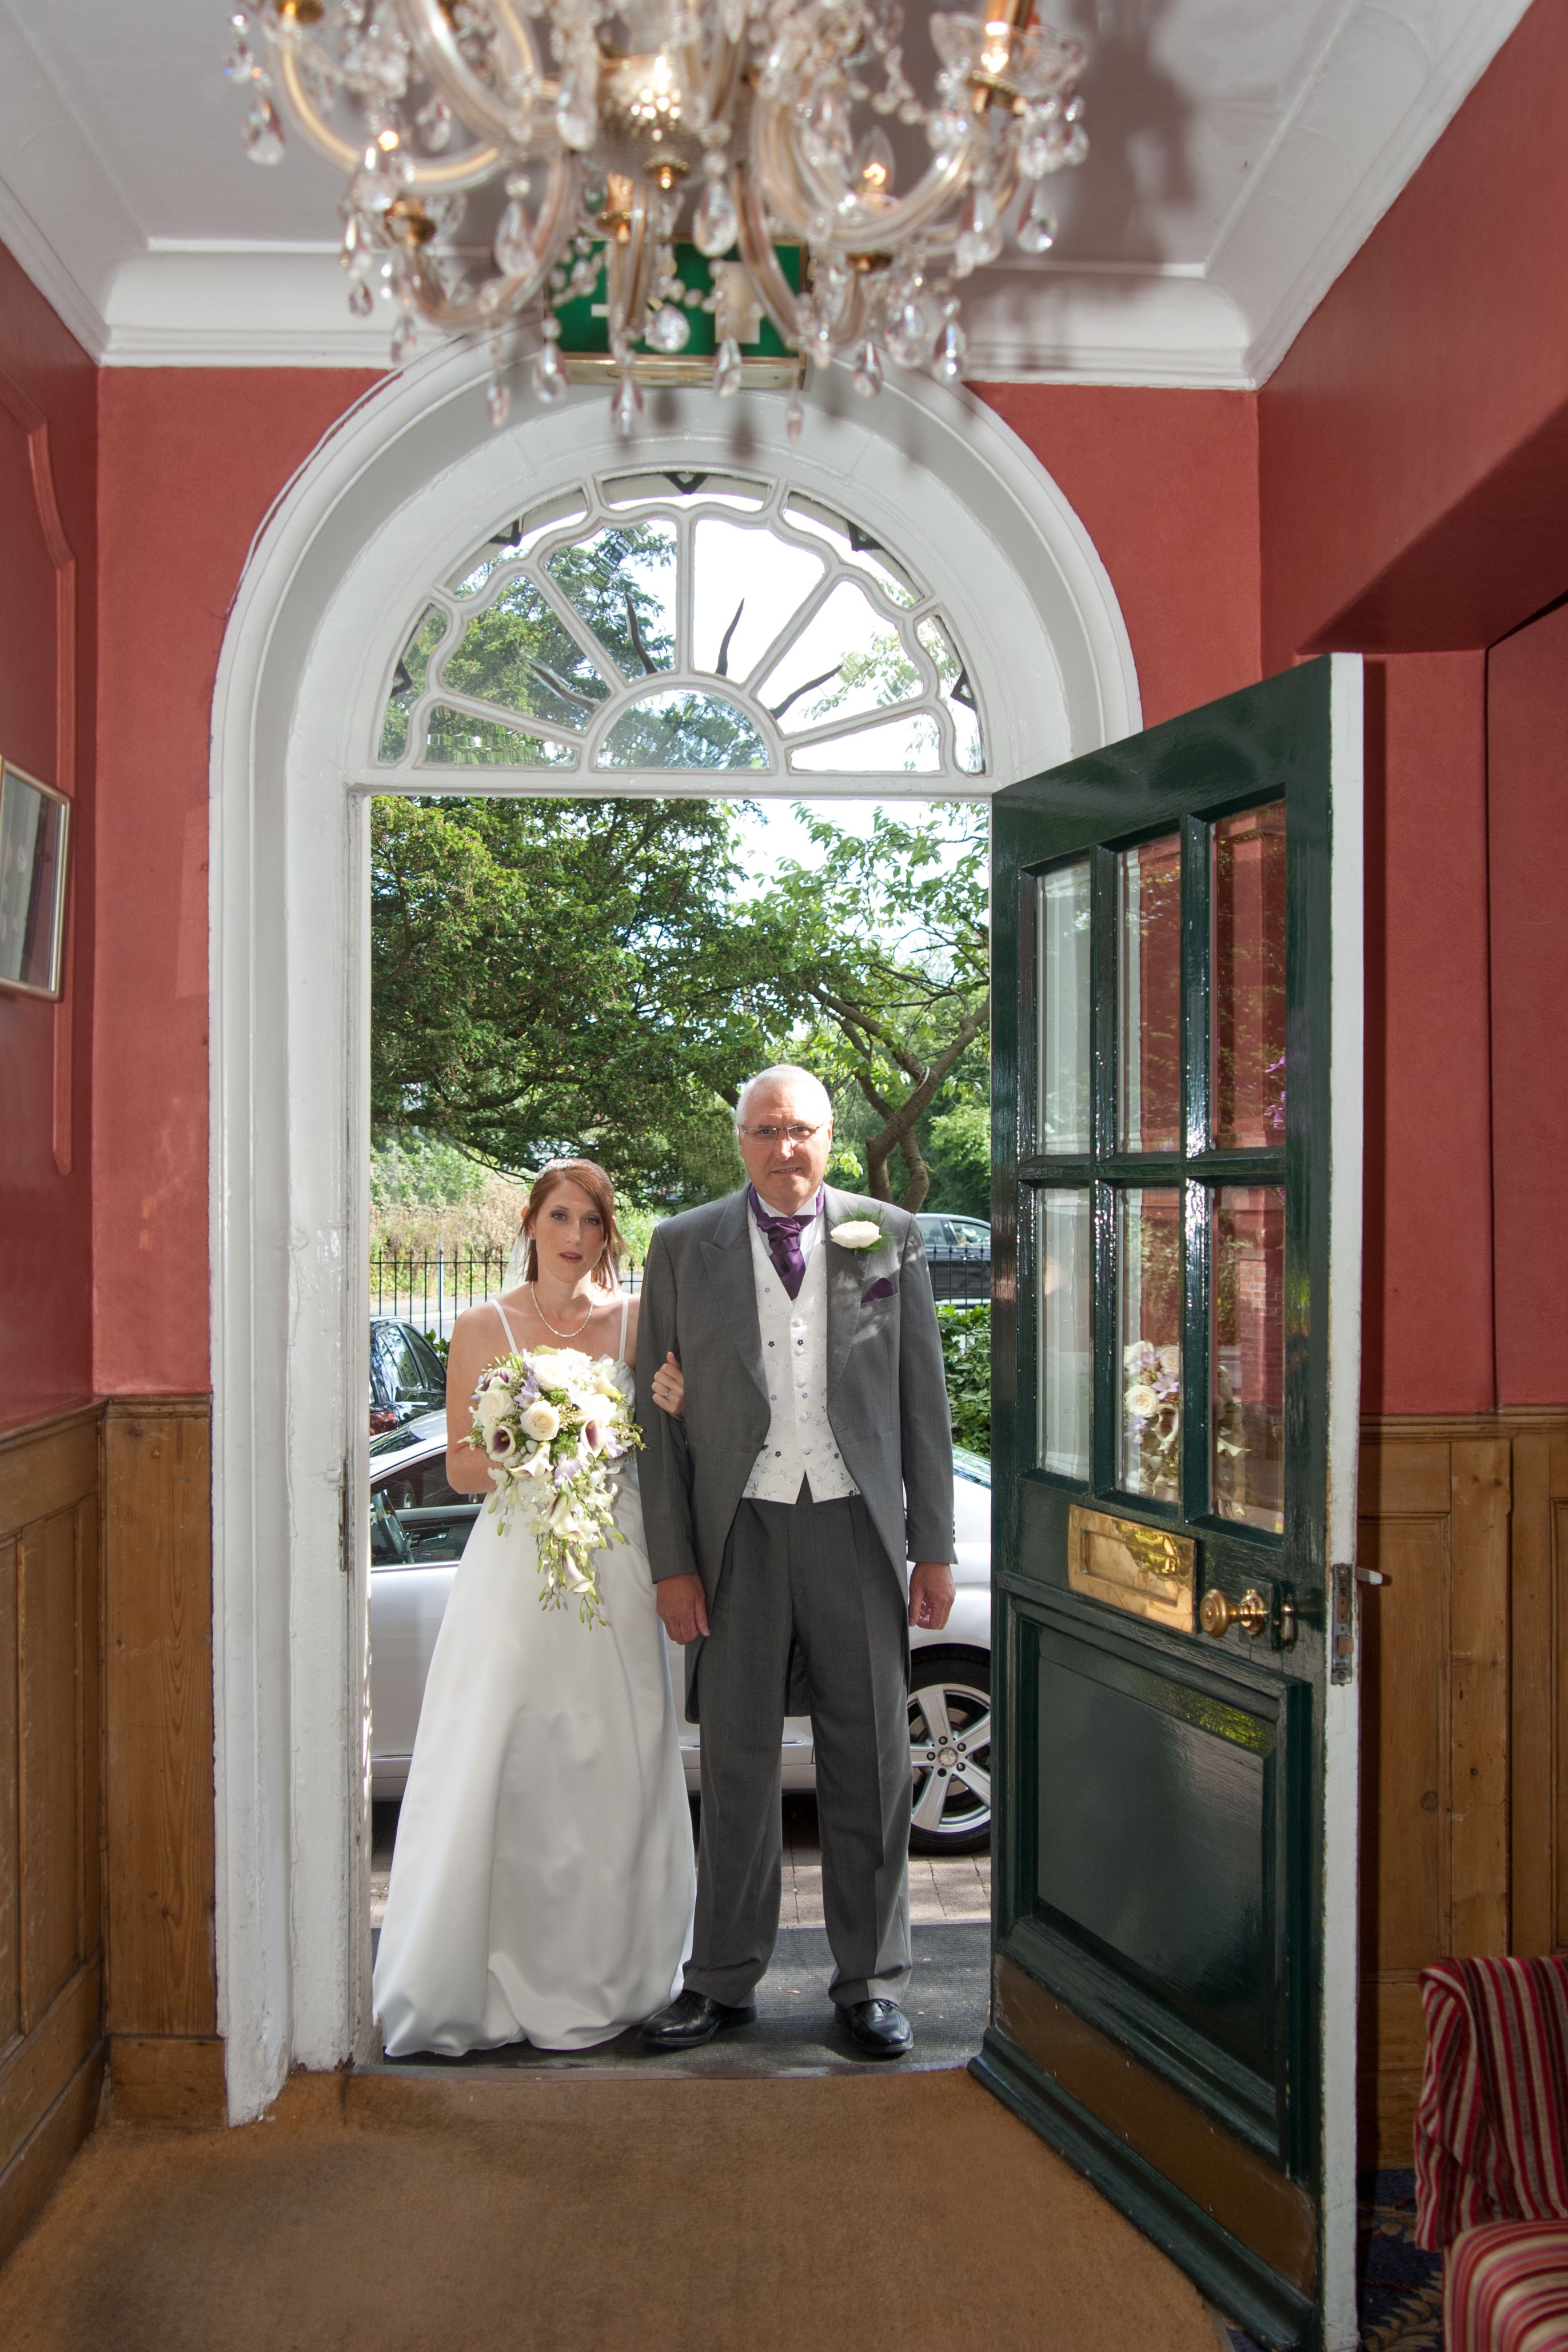 The bride enters the venue ready to be given away to her new